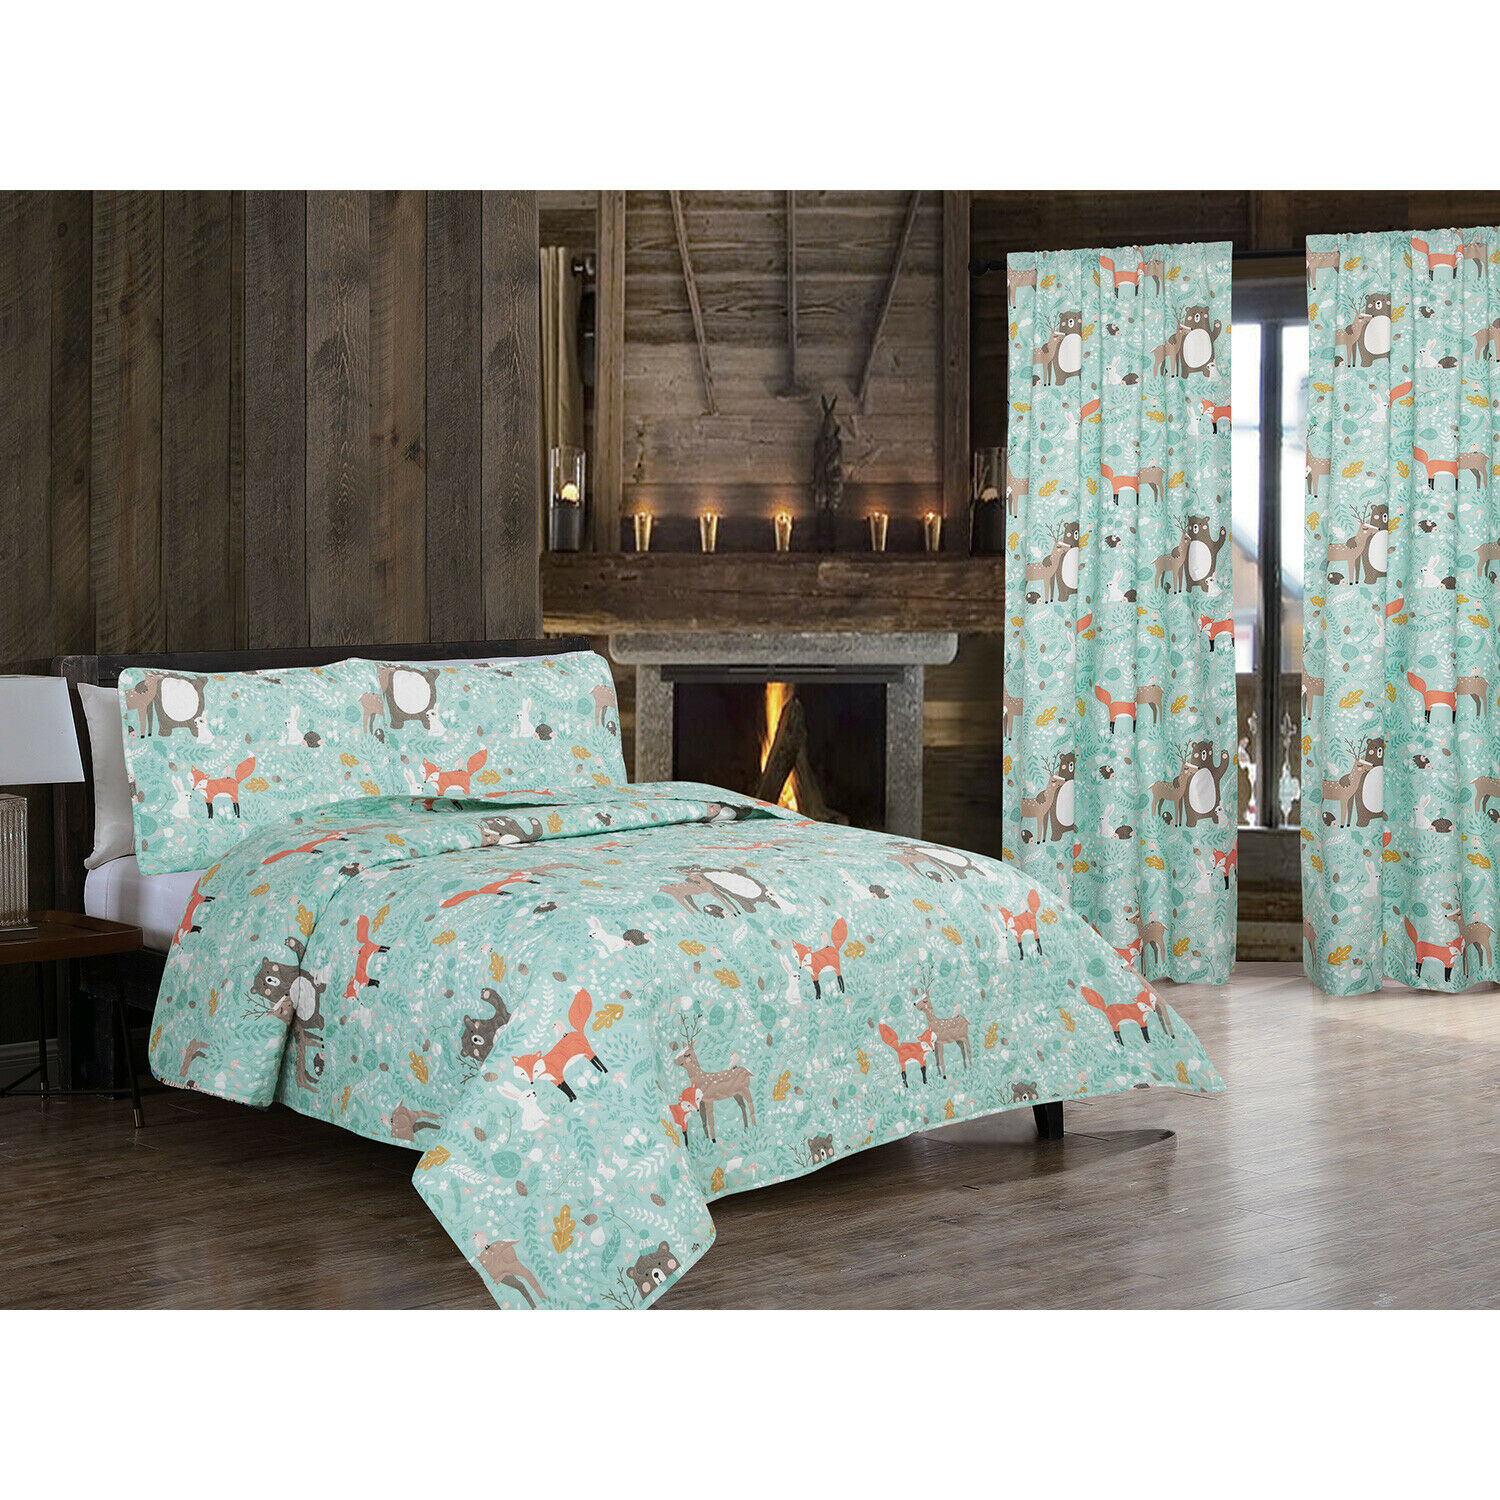 Twin or Full/Queen Woodland Creatures Quilt Set or Window Curtains, Teal Brown Bedding